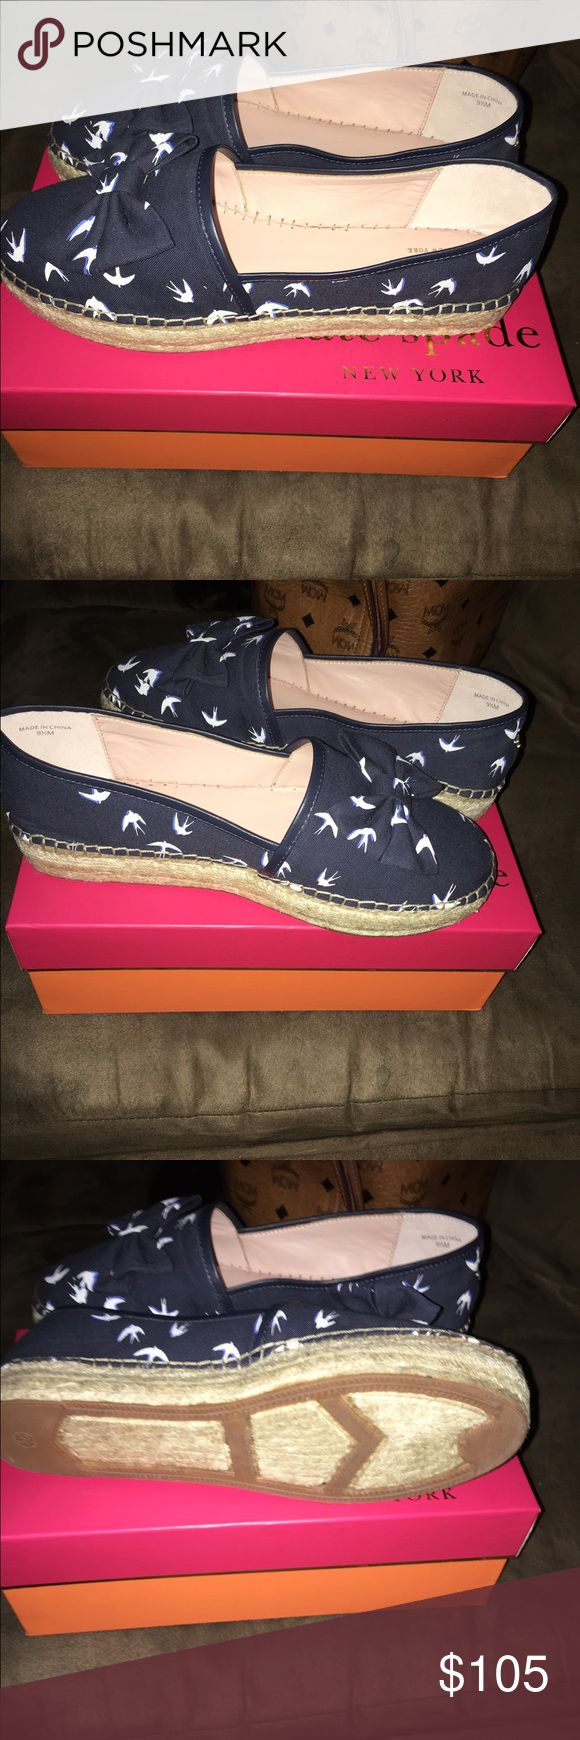 Cute blue and white espadrilles. These Kate Spade espadrilles are cute. They are navy blue and white. Wear them with some jeans and a cardi. Brand new in the box. kate spade Shoes Espadrilles